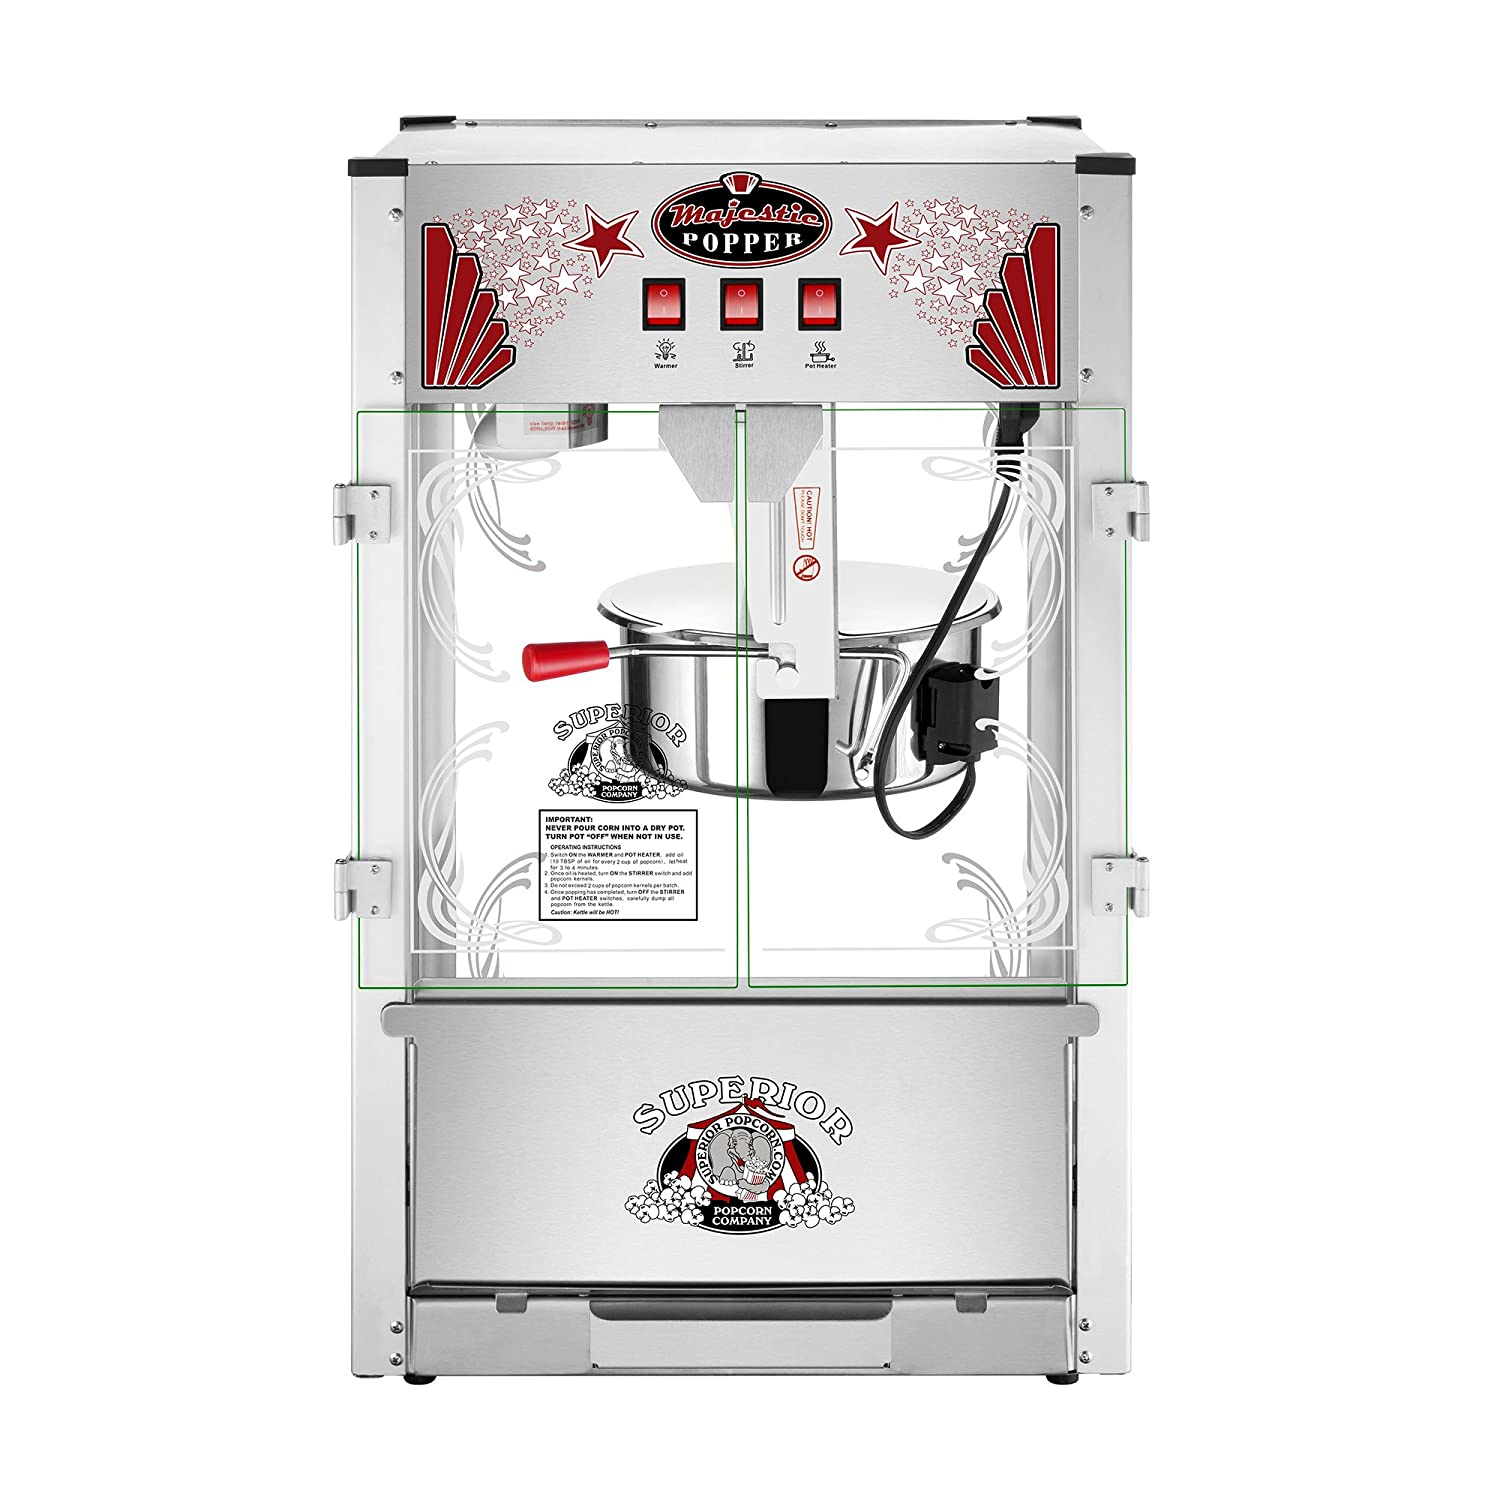 Majestic Popcorn Machine- Commercial Style Popcorn Popper Machine-Makes Approx. 7.5 Gallons Per Batch by Superior Popcorn 16 oz.